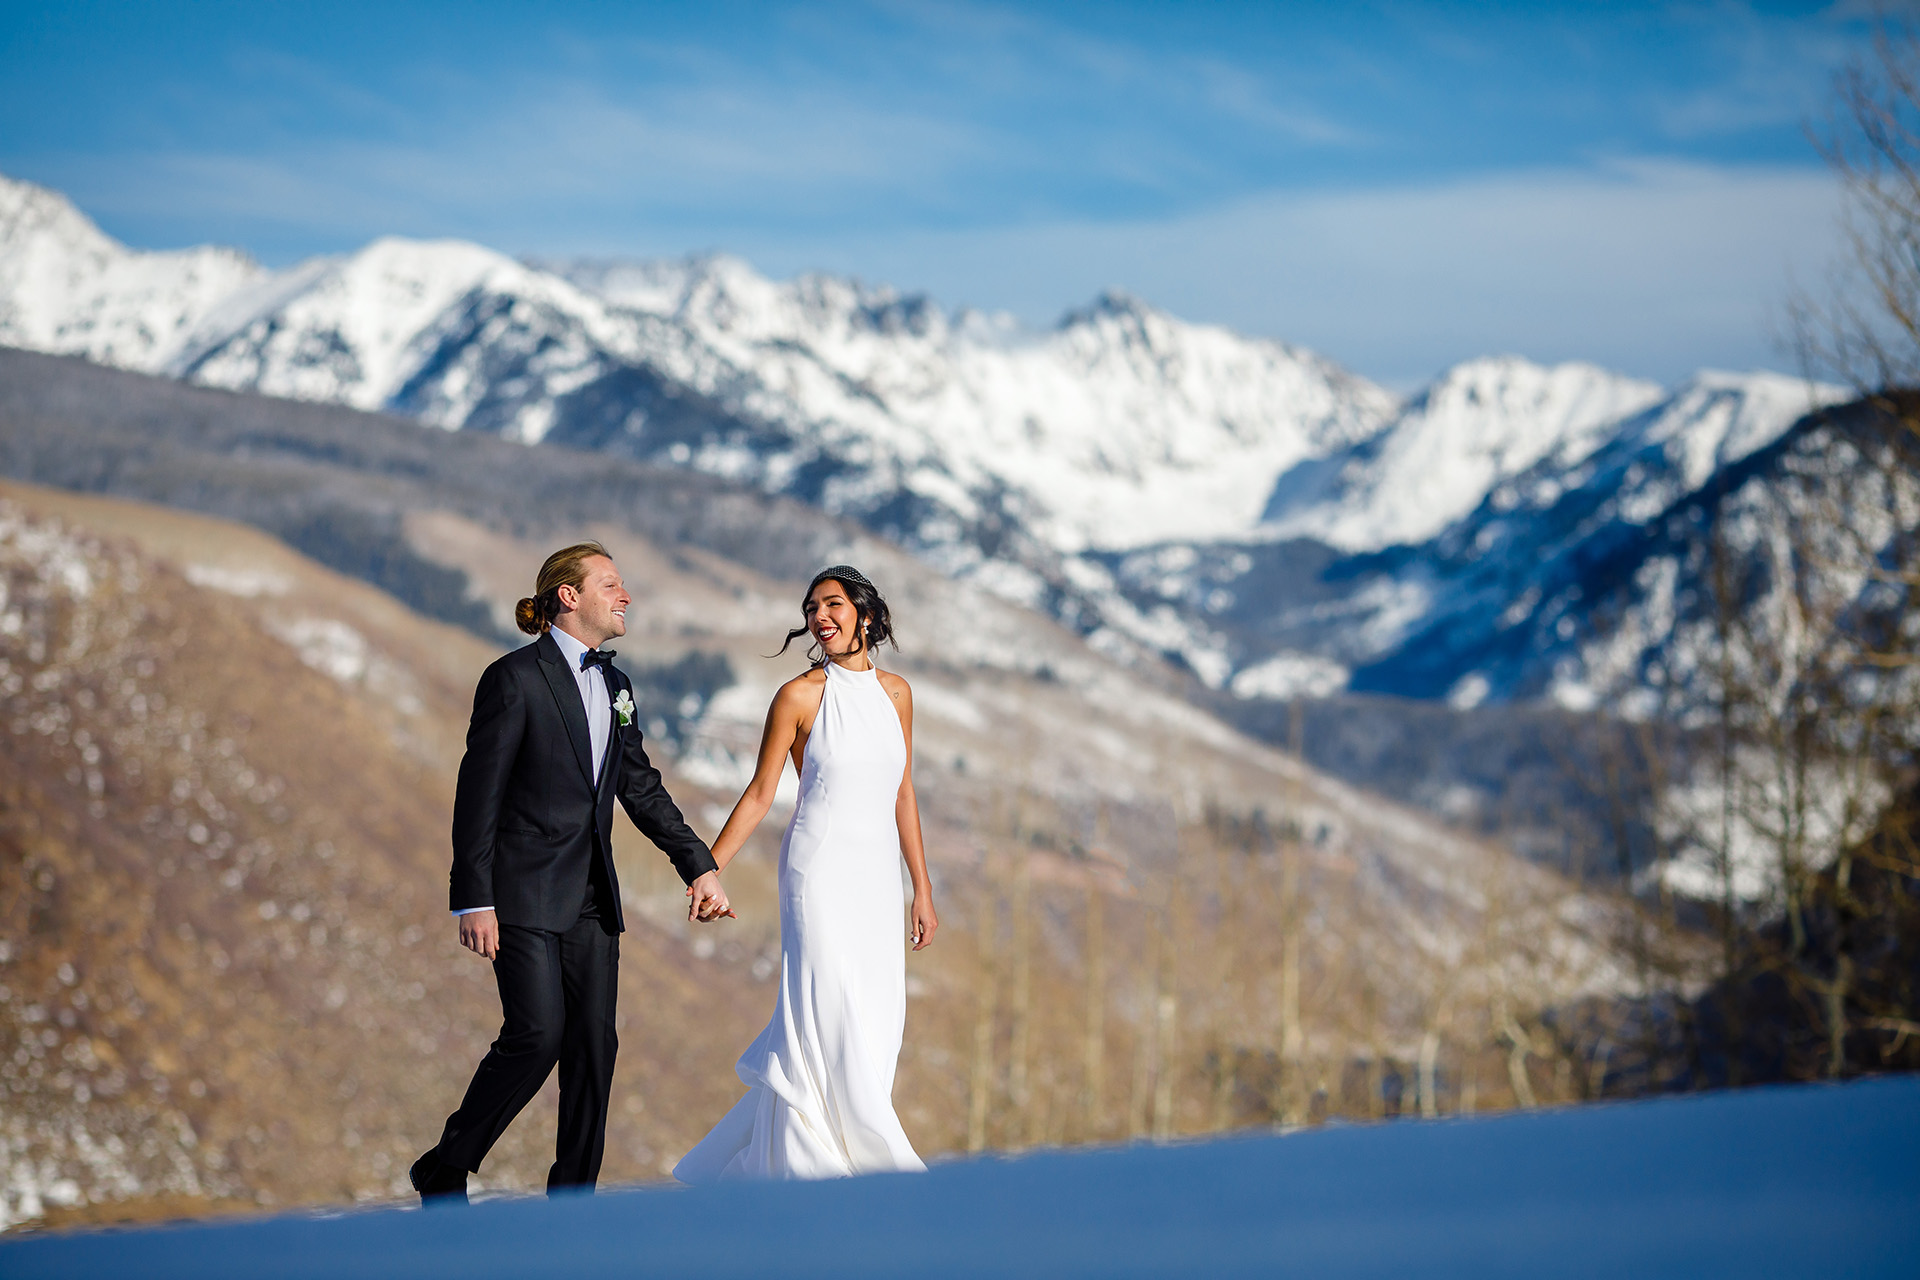 Vail Resort Wedding Image from Colorado Mountains | majestic mountain range defining the background